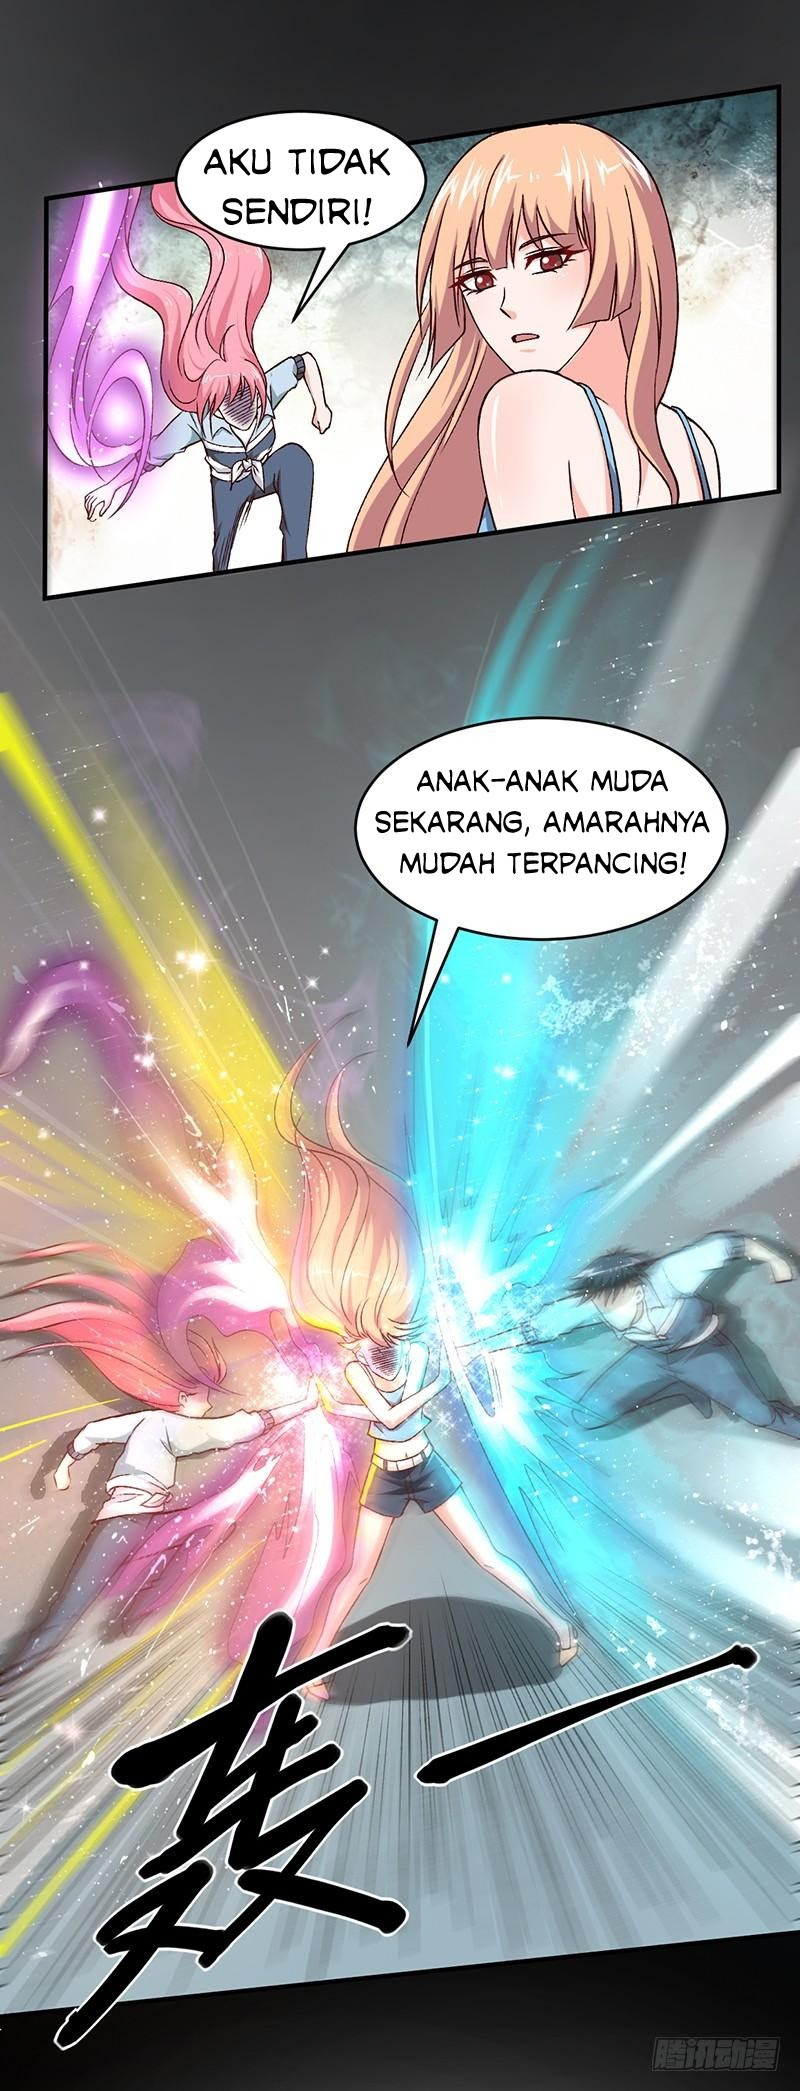 The Secret of A Sword Chapter 14